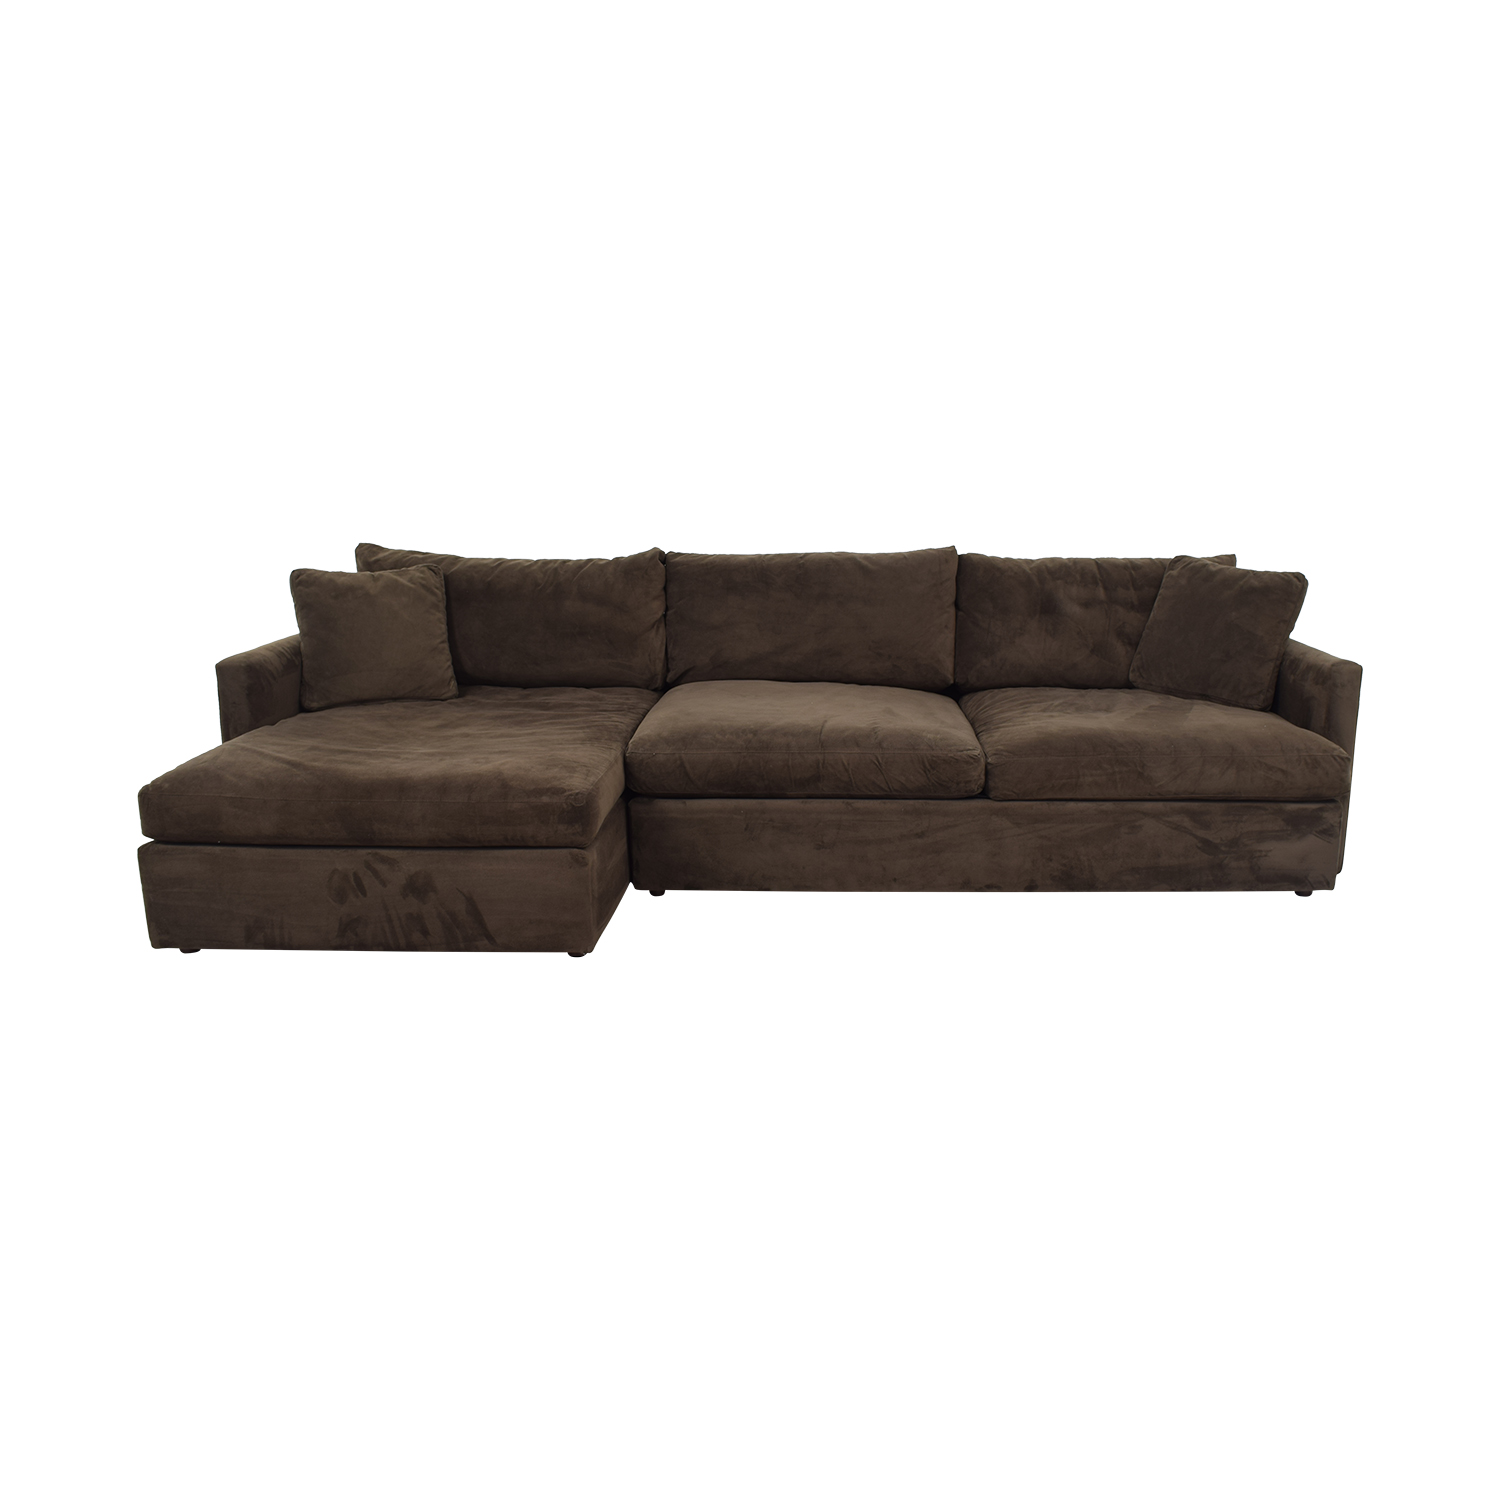 Crate & Barrel Crate & Barrel Sofa Sectional with Chaise second hand